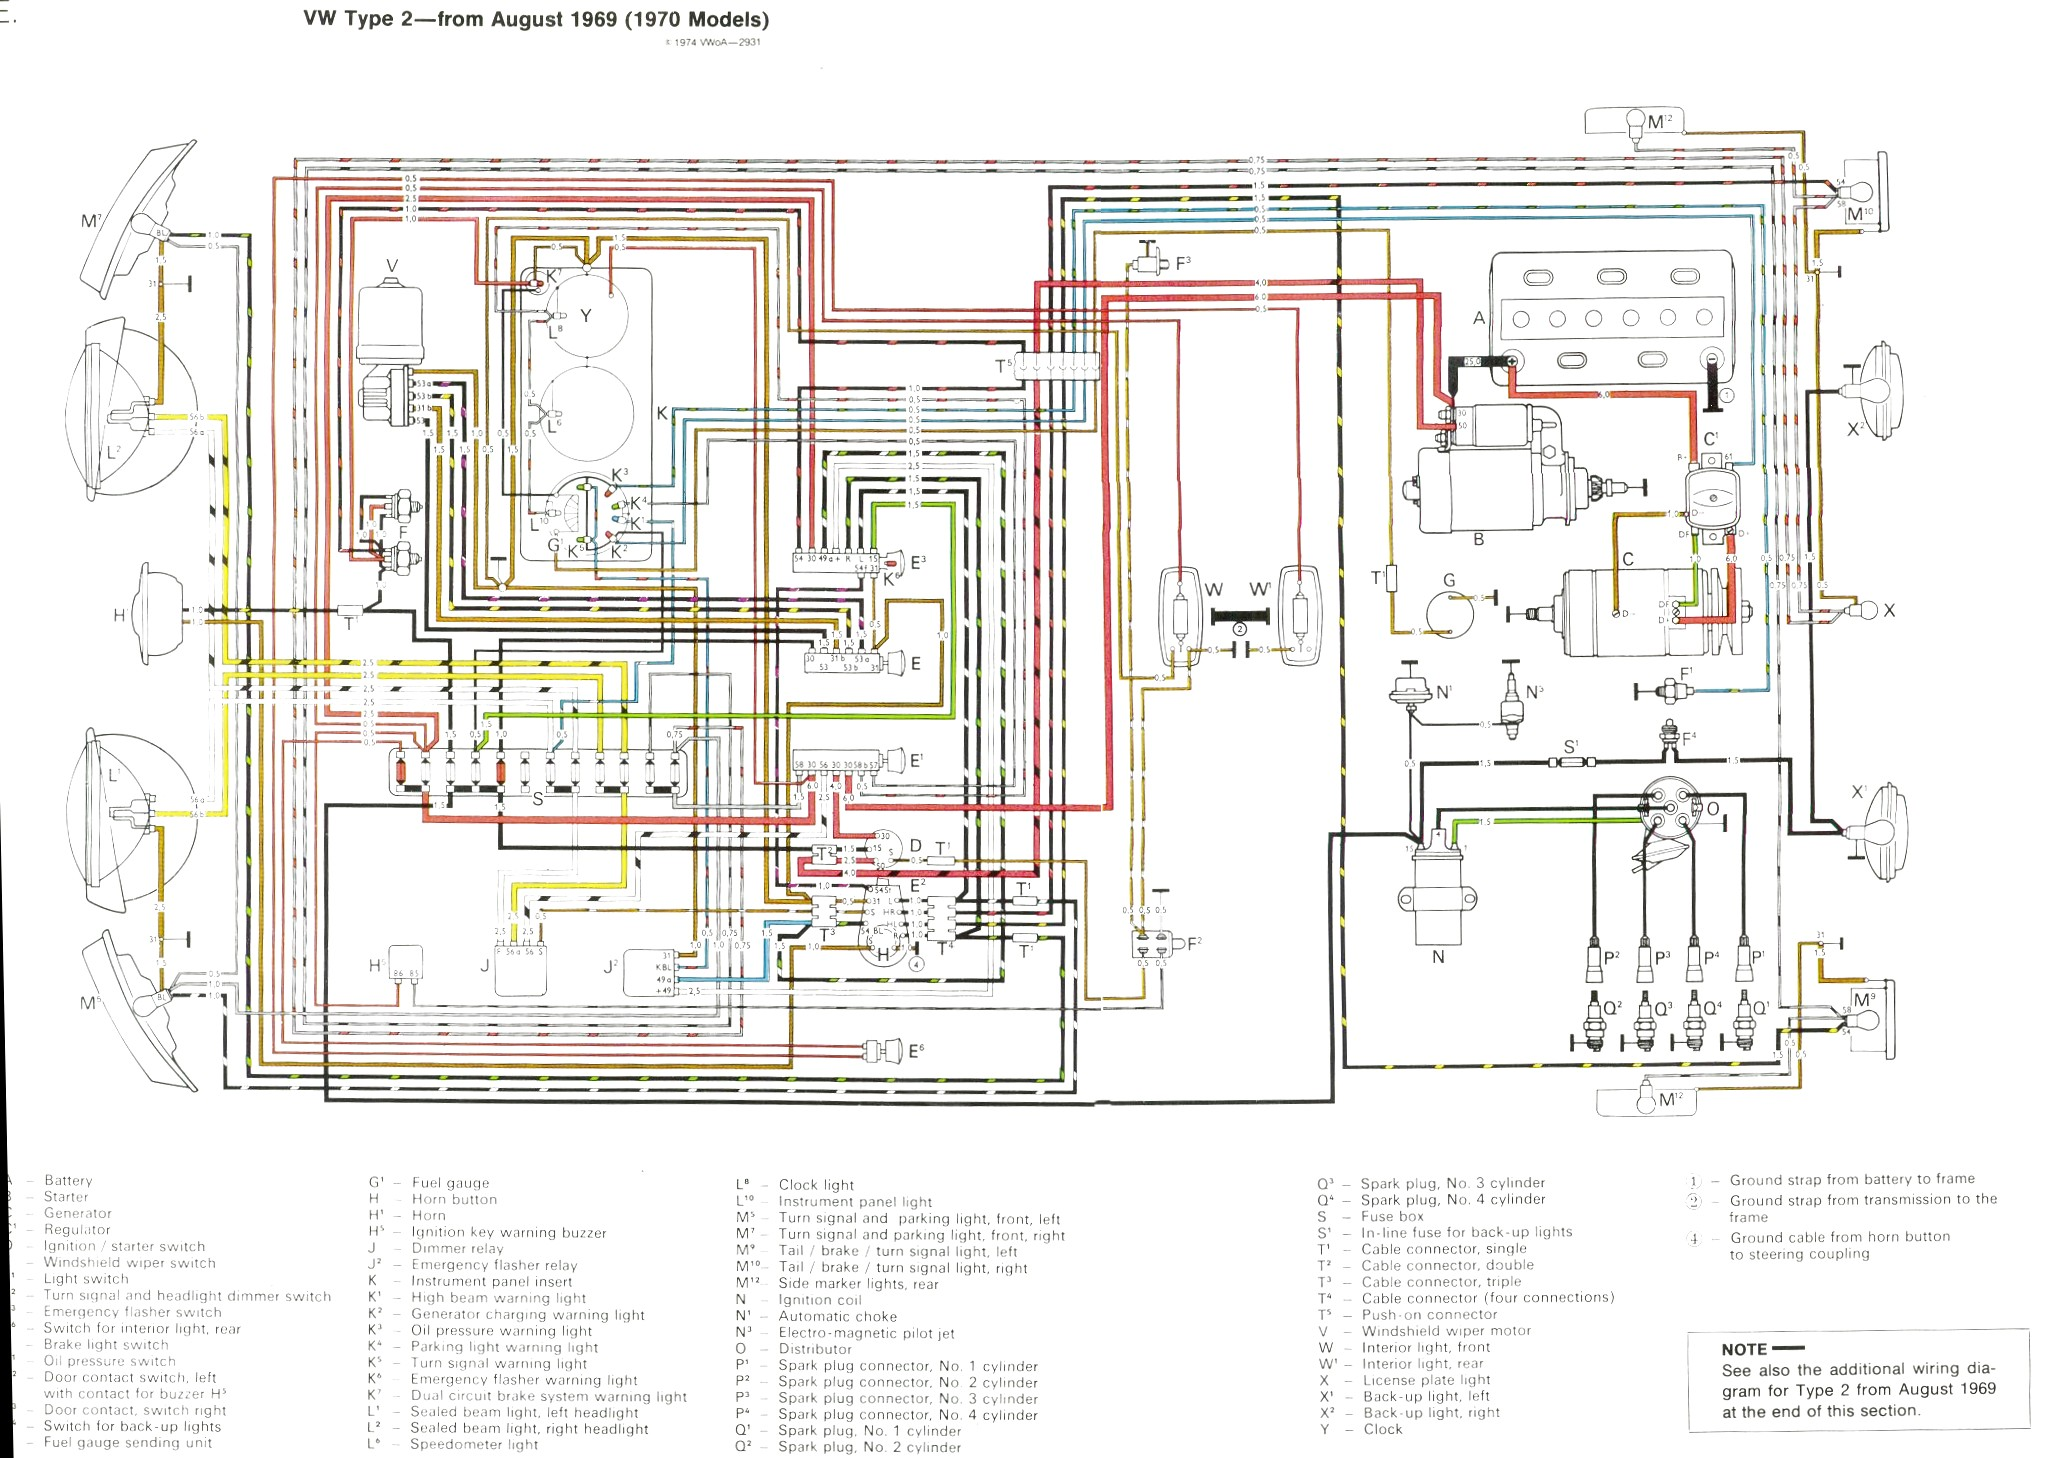 70 Vw Wiring Diagram - 18.qio.savic-family.de •  Vw Bug Wiring Diagrams on 1972 vw beetle fuse box diagram, 1966 chevrolet impala wiring diagram, 12 volt switch wiring diagram, 1966 chevy impala wiring diagram, vw kit car wiring diagram, 1966 ford wiring diagram, 1965 vw wiring diagram, 1966 porsche wiring diagram, 67 vw wiring diagram, 1972 vw beetle engine diagram, 69 beetle wiring diagram, vw engine wiring diagram, 1966 mustang wiring diagram, 1968 vw beetle engine diagram, vw beetle wiring diagram, classic beetle wiring diagram, 1966 pontiac gto wiring diagram, 1966 corvette wiring diagram, 1974 super beetle wiring diagram, 1956 vw wiring diagram,